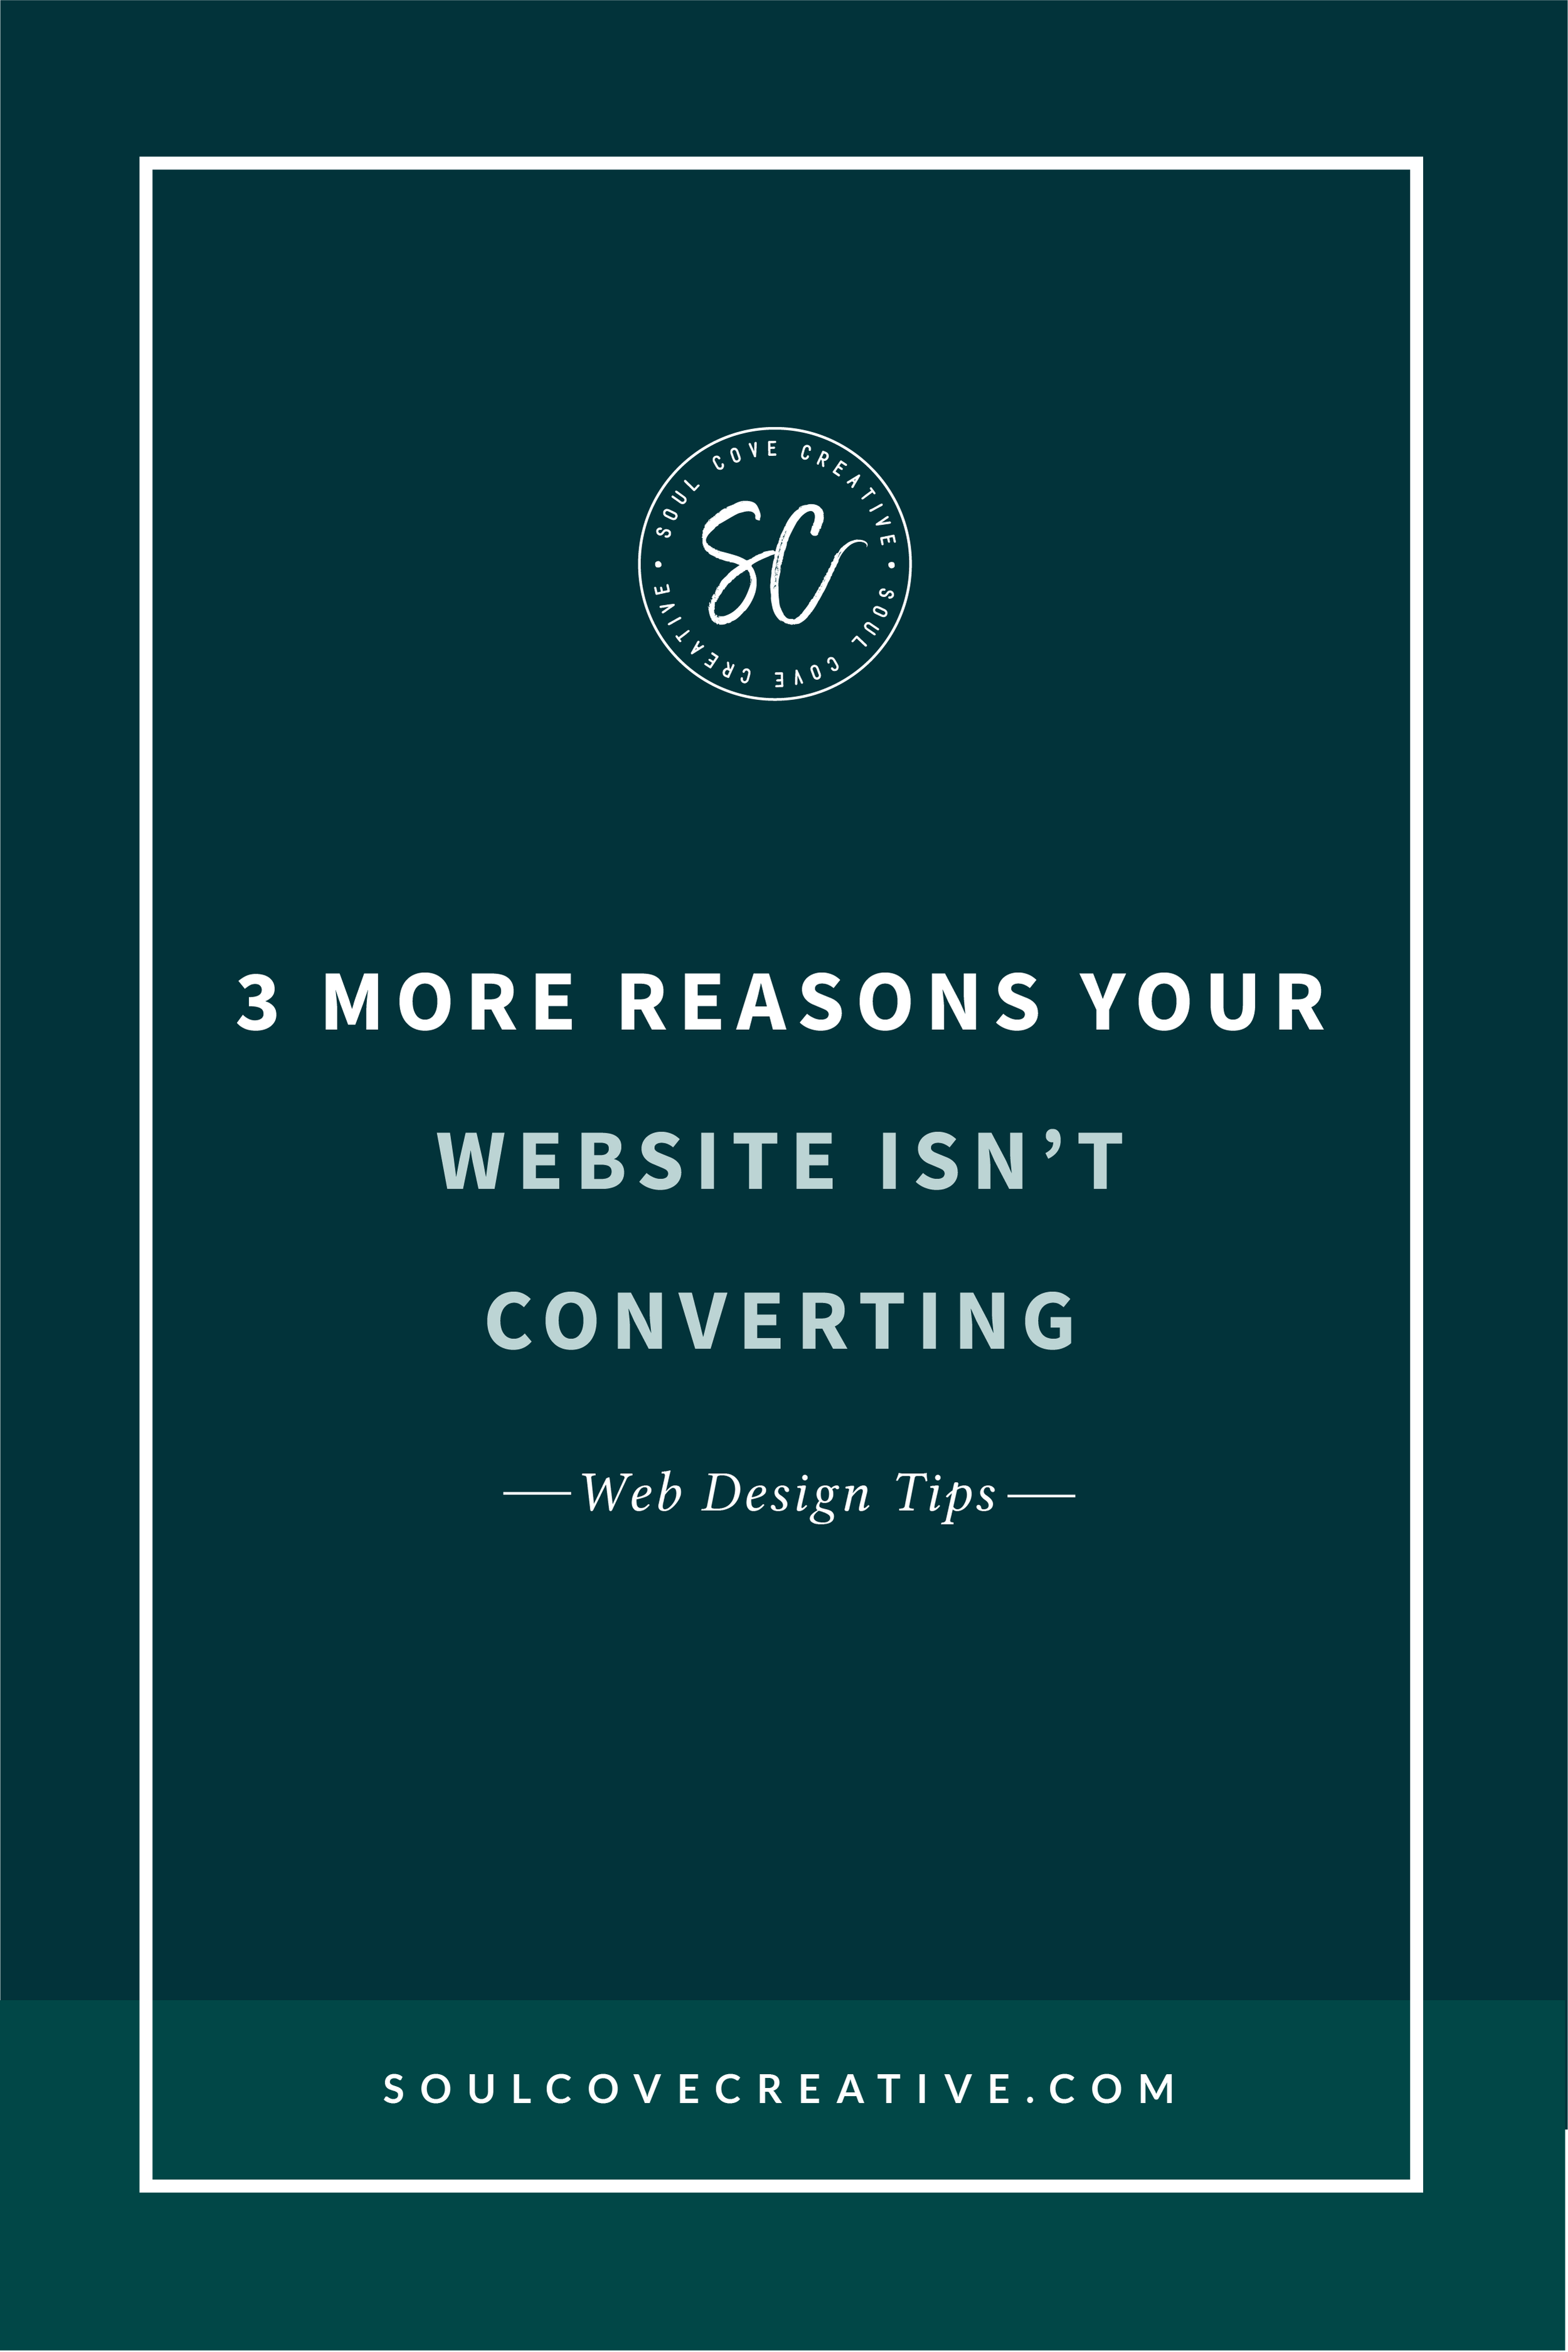 3 More Reasons your Website Isn't Converting